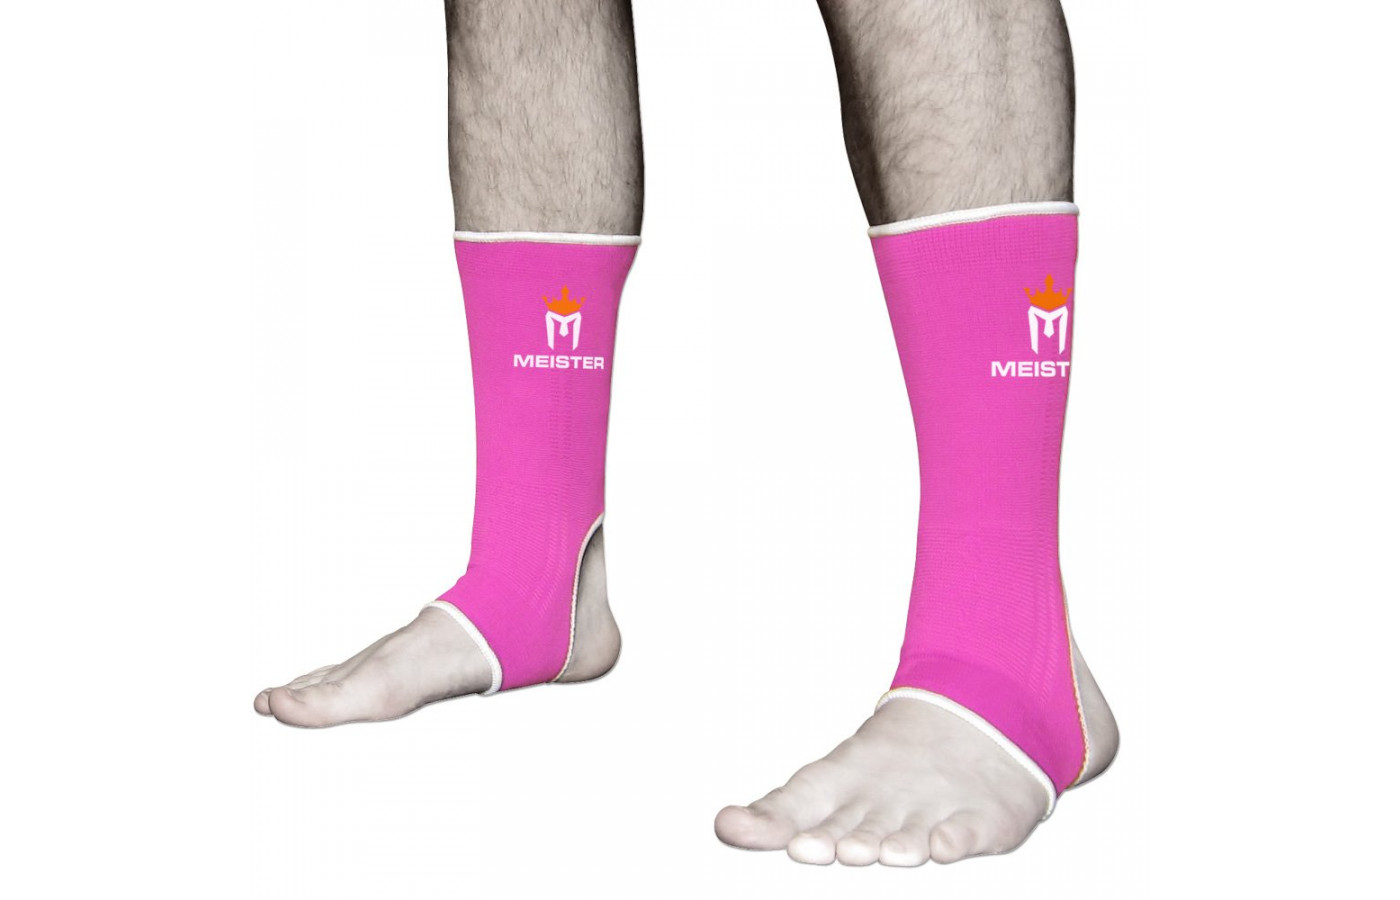 meister ankle supports pink